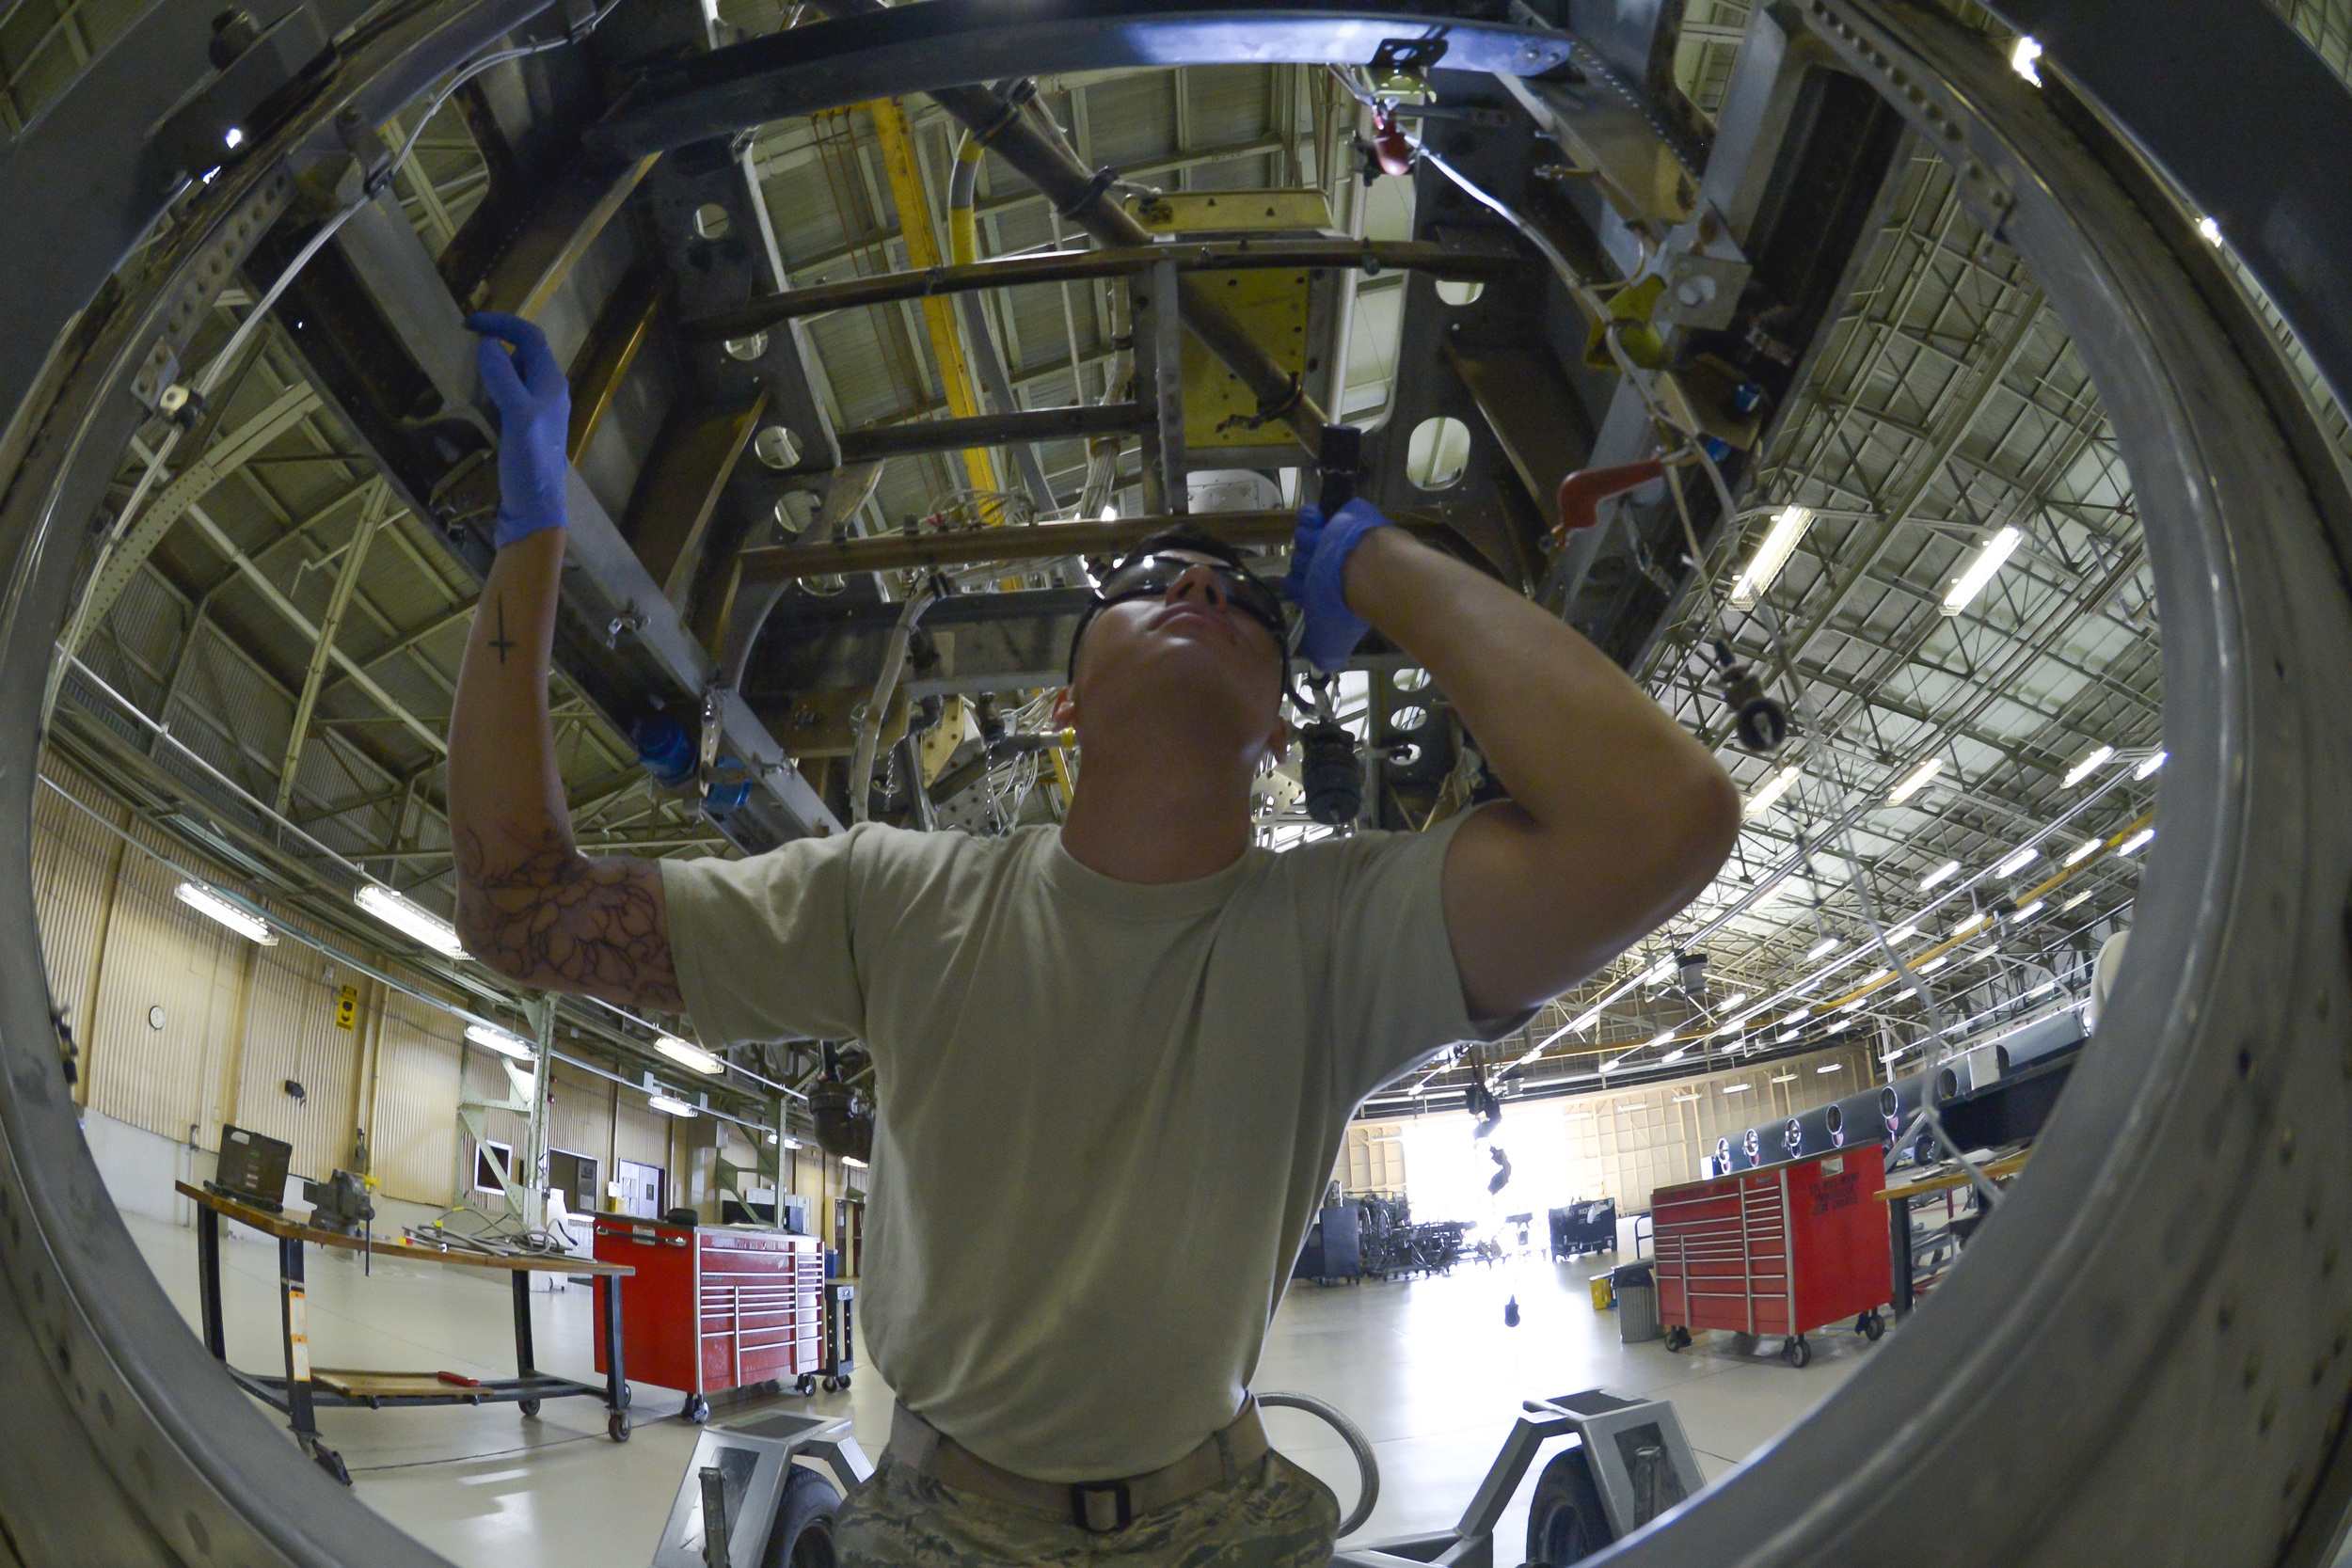 Airman 1st Class Gage Walker, 374th Maintenance Squadron propulsion flight aerospace propulsion apprentice, inspects a lower mount beam on a quick engine change kit at Yokota Air Base, Japan, Sept. 23, 2015. The kit section plays an important role within the flight during a compressor module change because the engine is removed and the Airmen are able to reach tough areas of the engine. (U.S. Air Force photo by Senior Airman David Owsianka/Released)